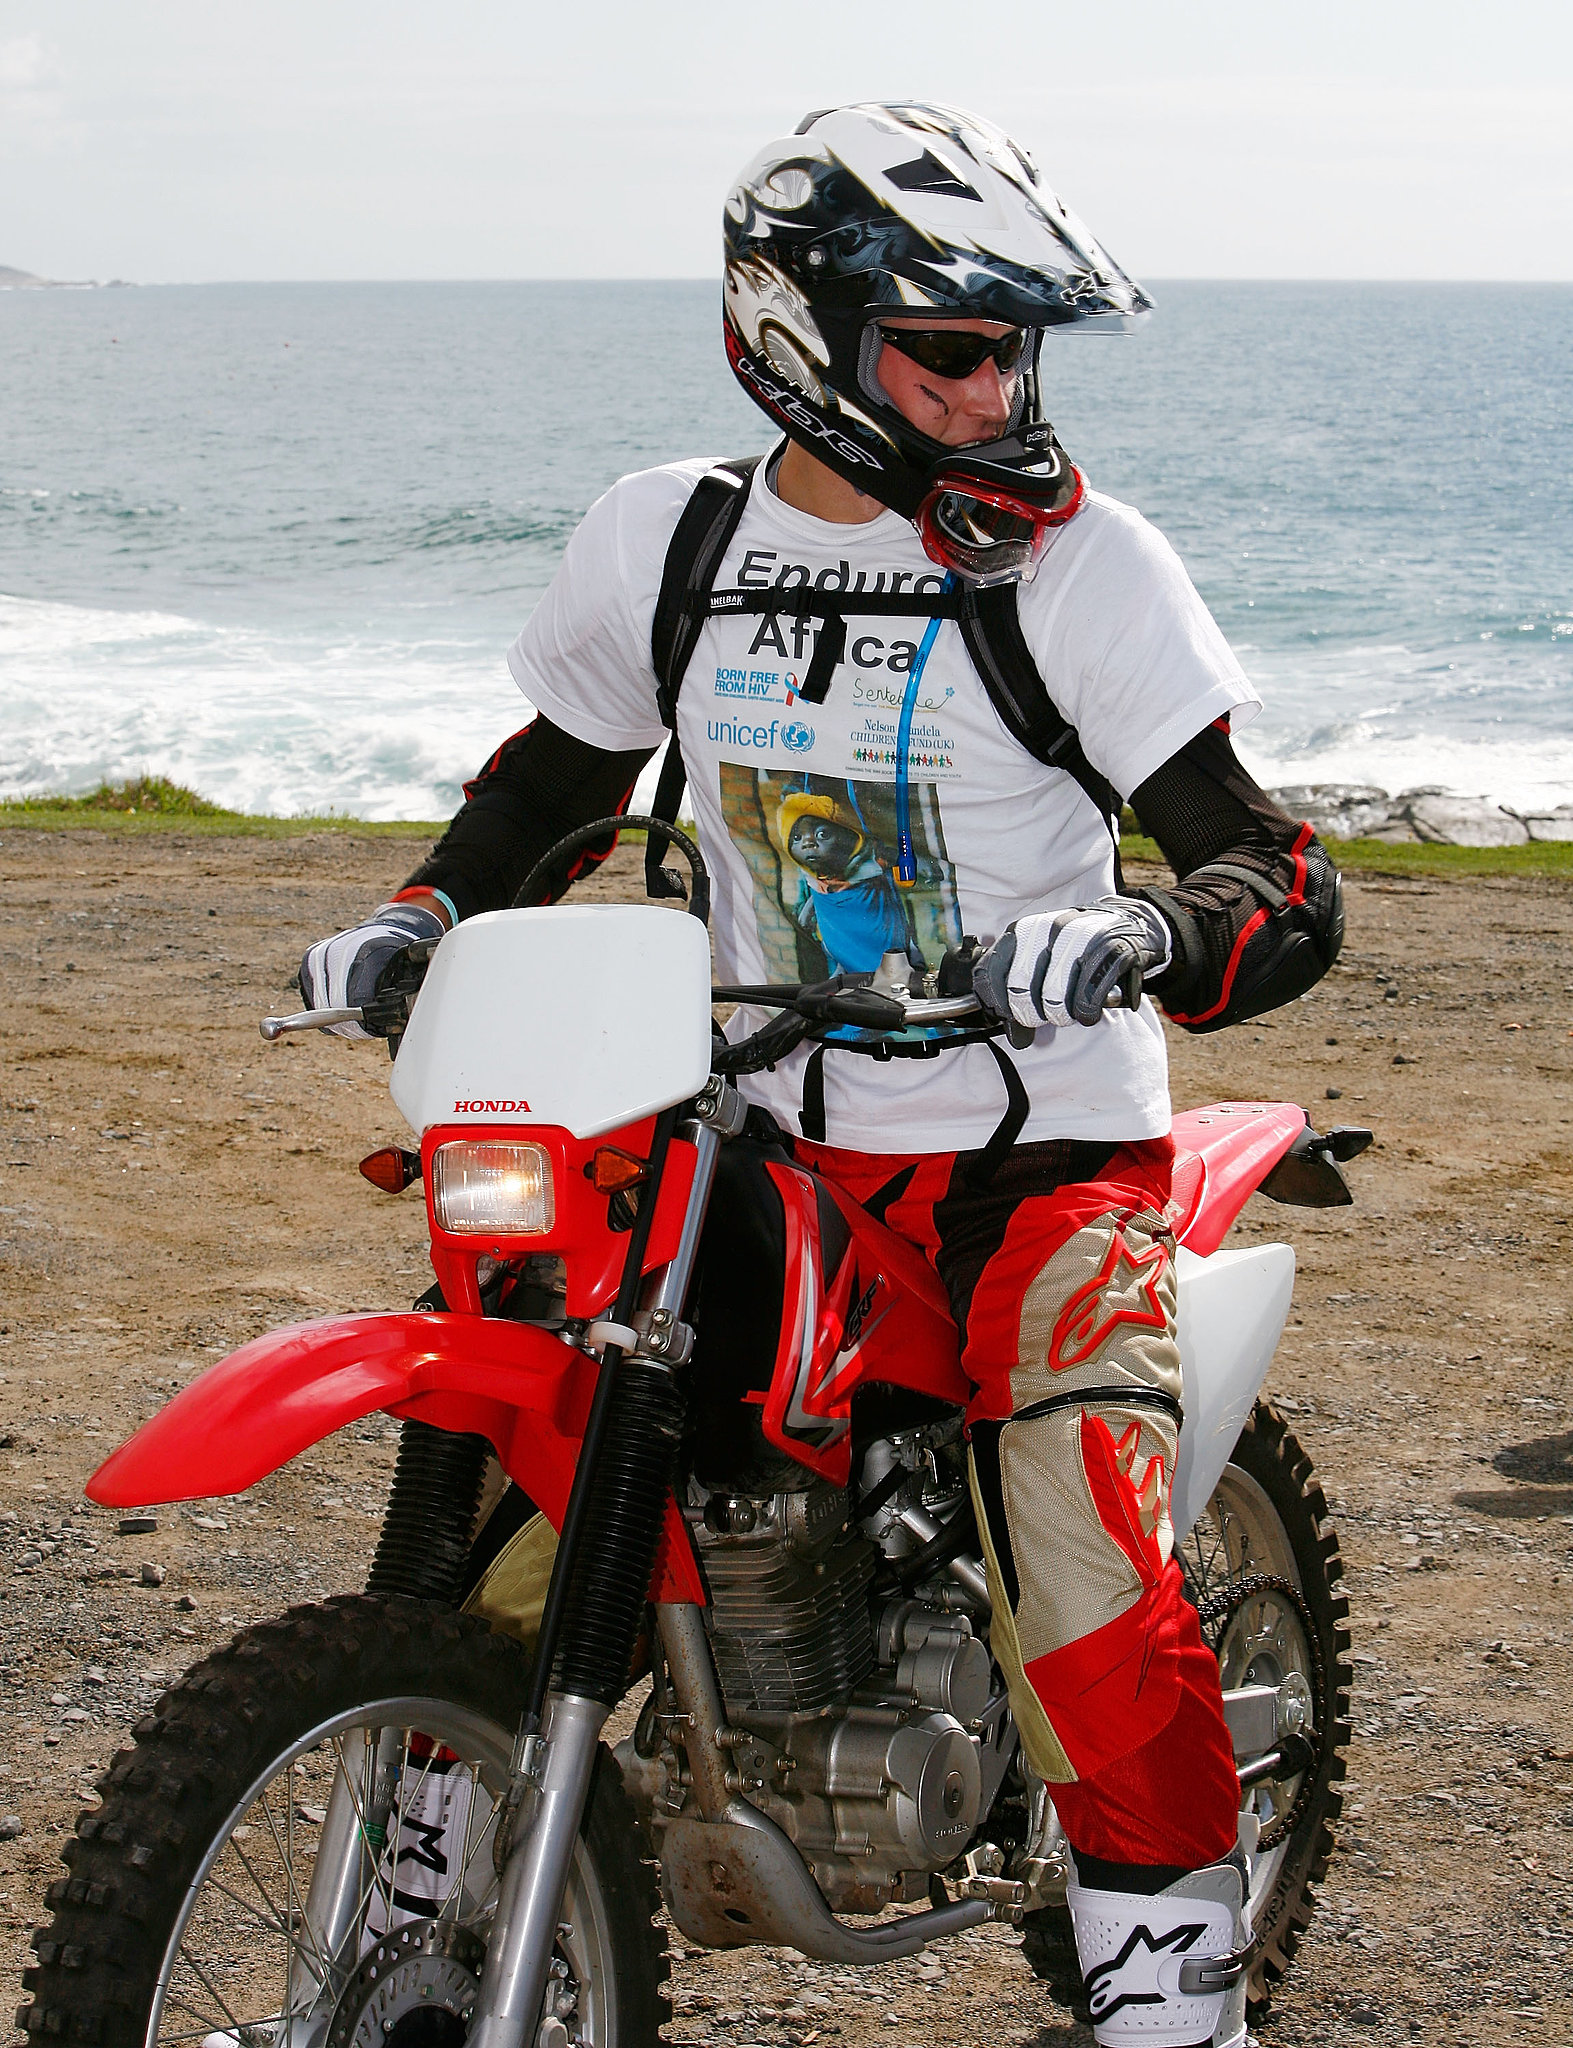 Prince harry hopped on a dirt bike in South Africa in October 2008.